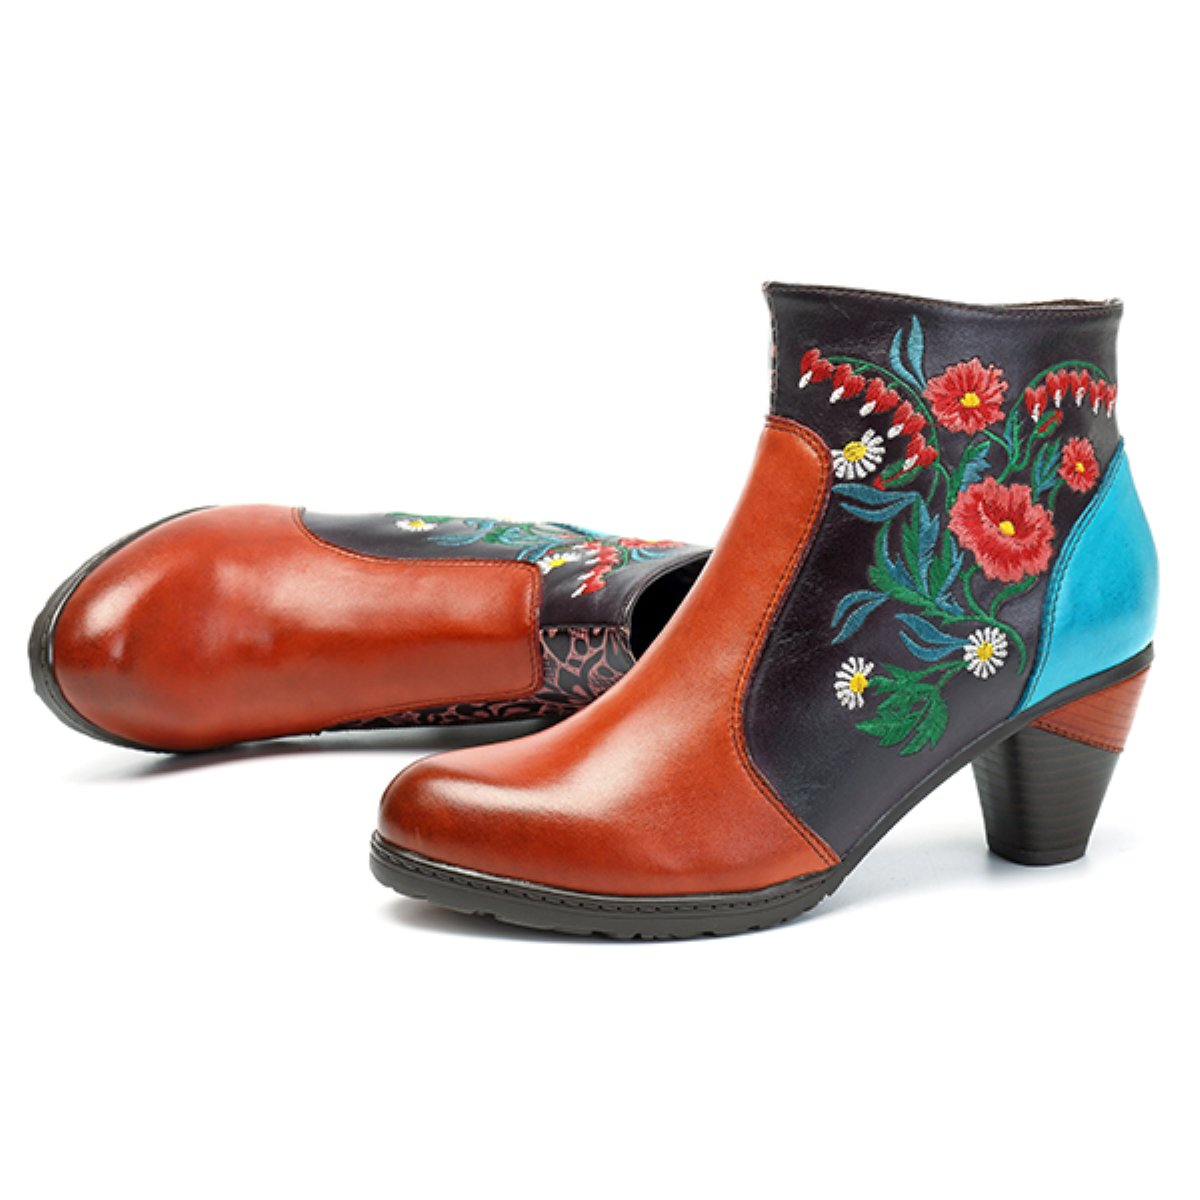 39be536bf91d7 socofy Leather Ankle Boots,Women's Handmade Retro Blossom Embroidery  Pattern Side Zipper Block Heel Shoes Orange Red 7 B(M) US